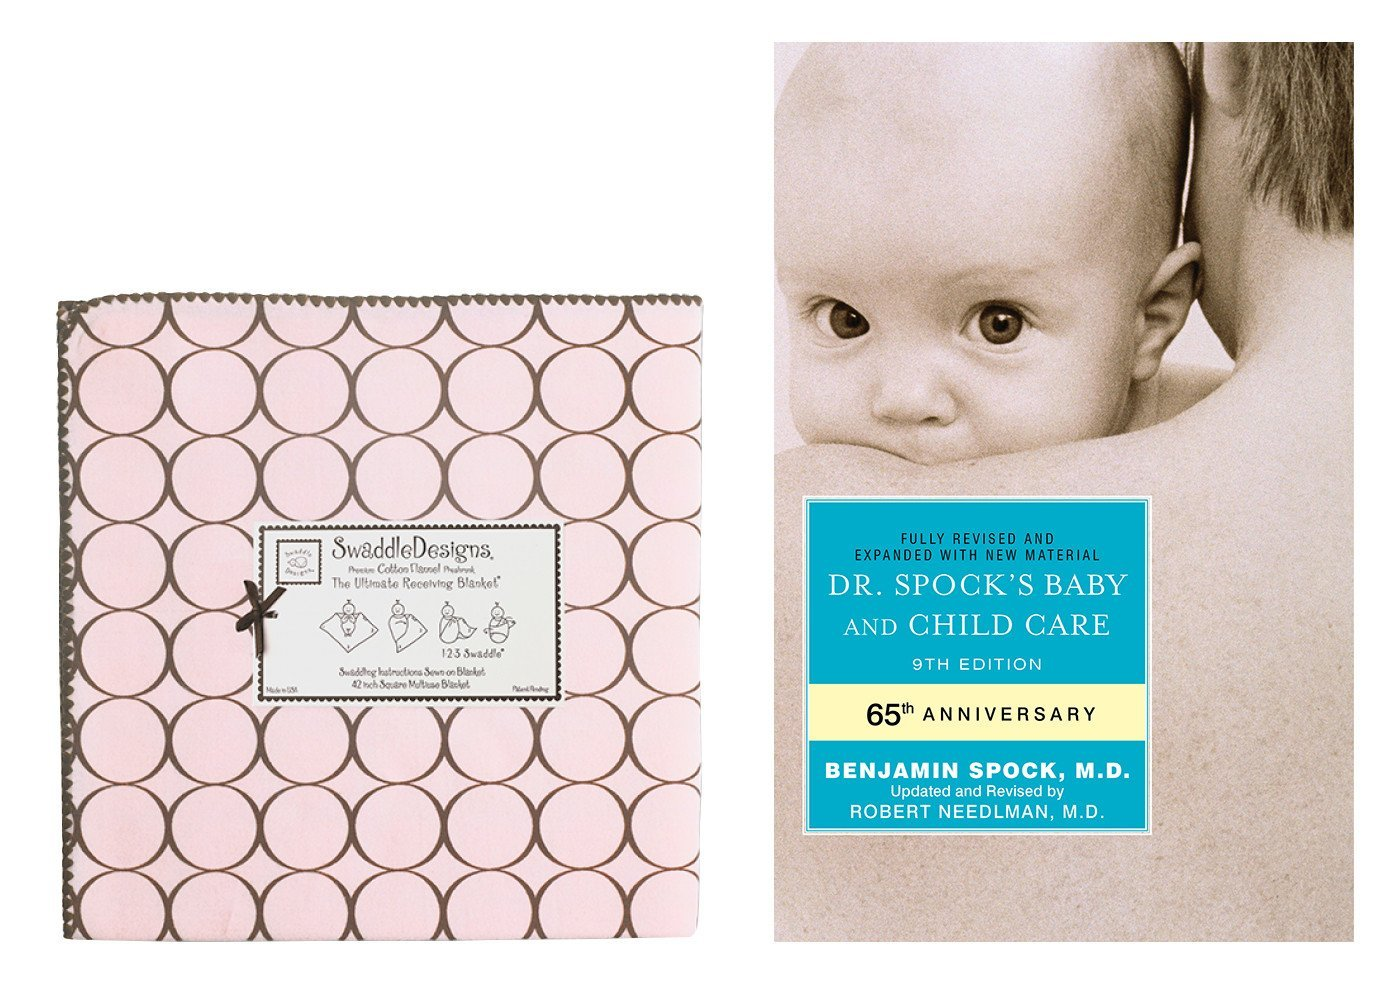 SwaddleDesigns Ultimate Receiving Blanket with Dr. Spock's Baby & Child Care Guide, Brown Mod Circles   Pastel... by SwaddleDesigns